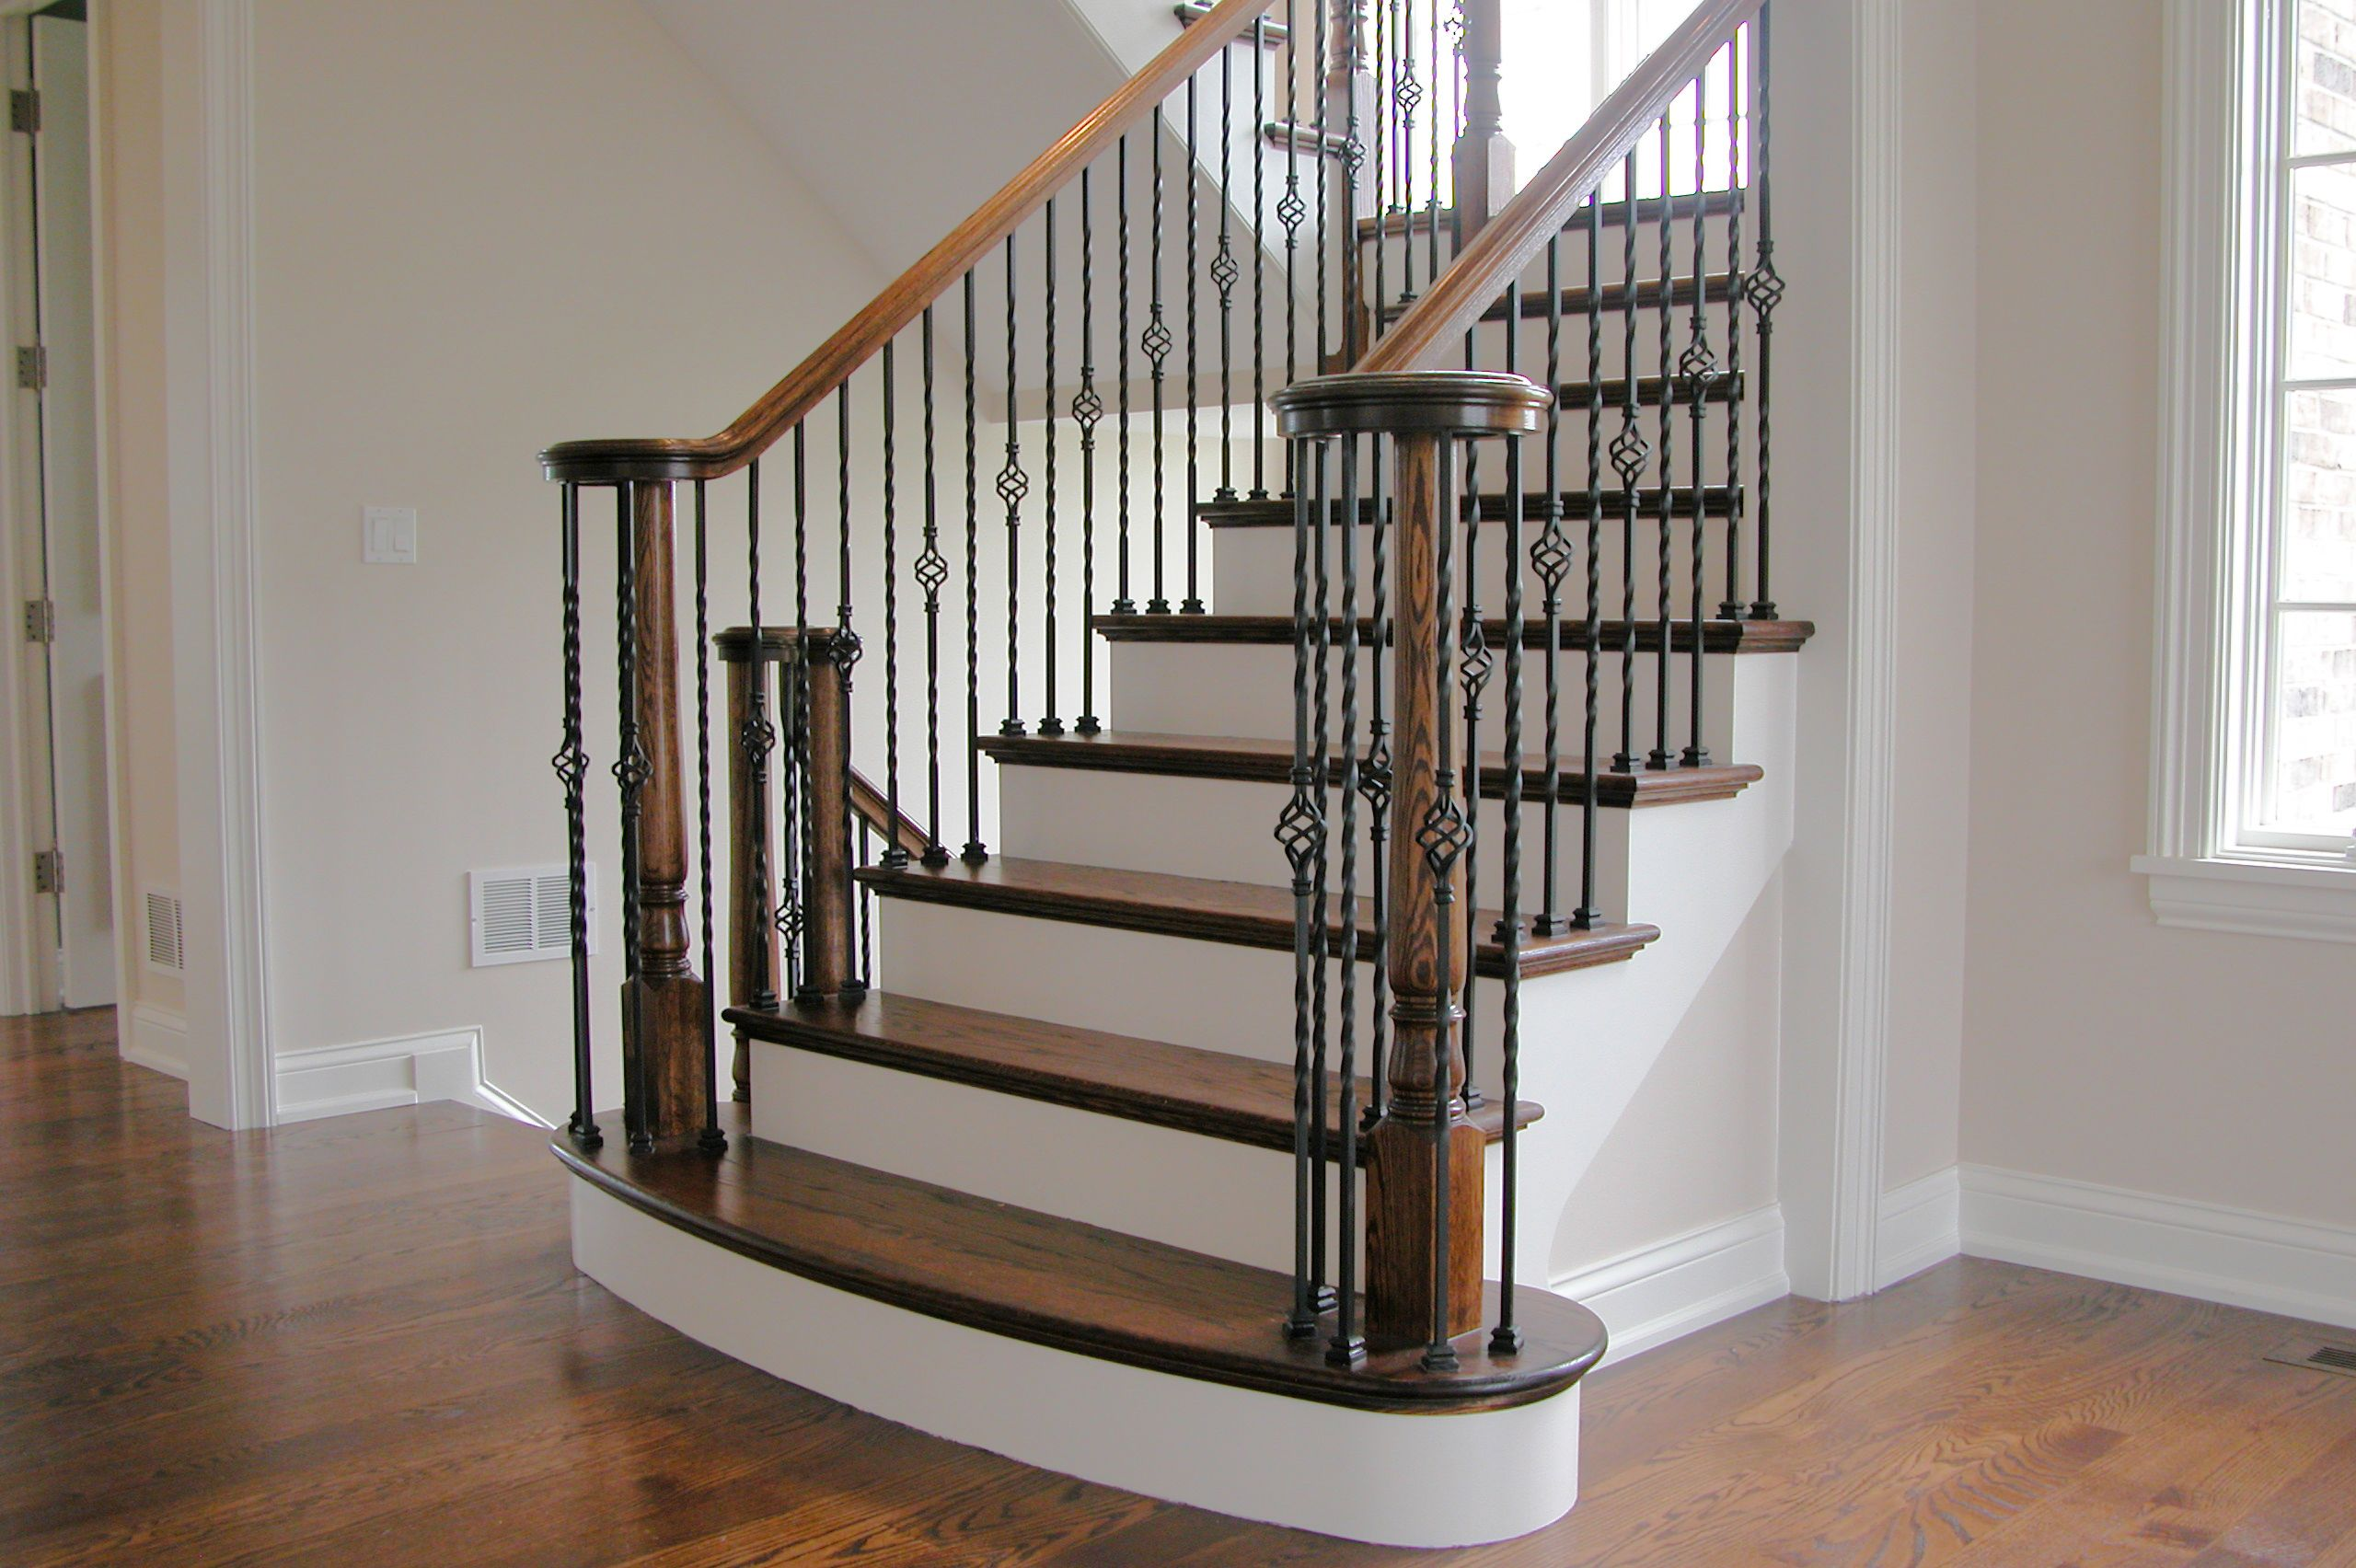 This Staircase Design Was Created Using Twist Series